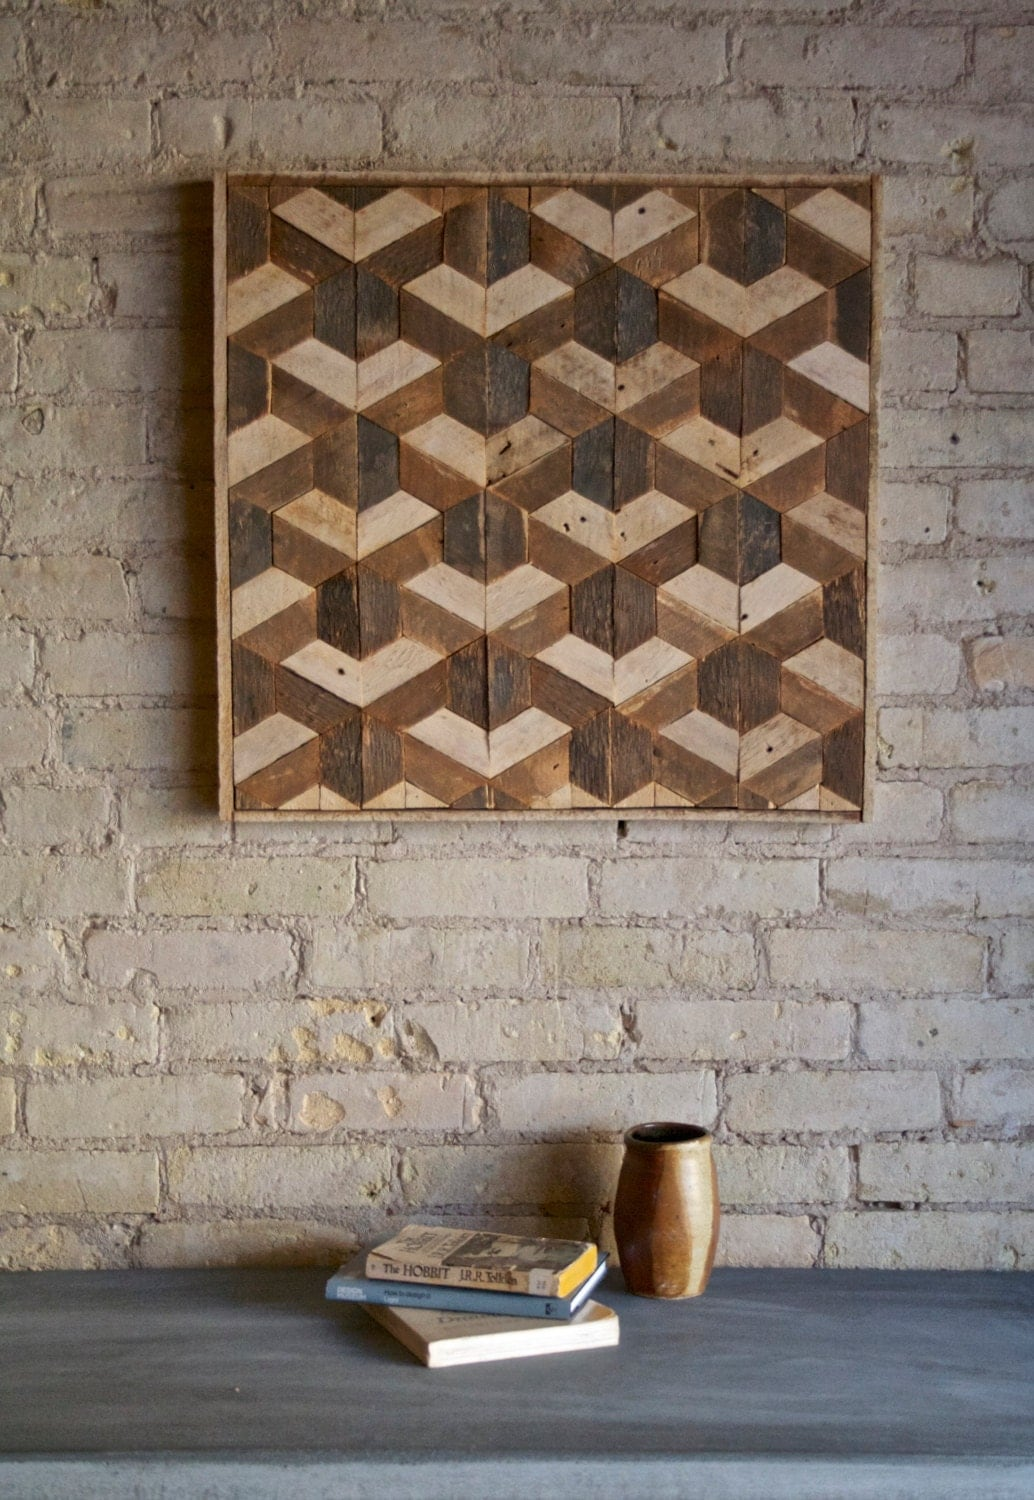 Wood Wall Designs : Reclaimed wood wall art decor lath pattern geometric